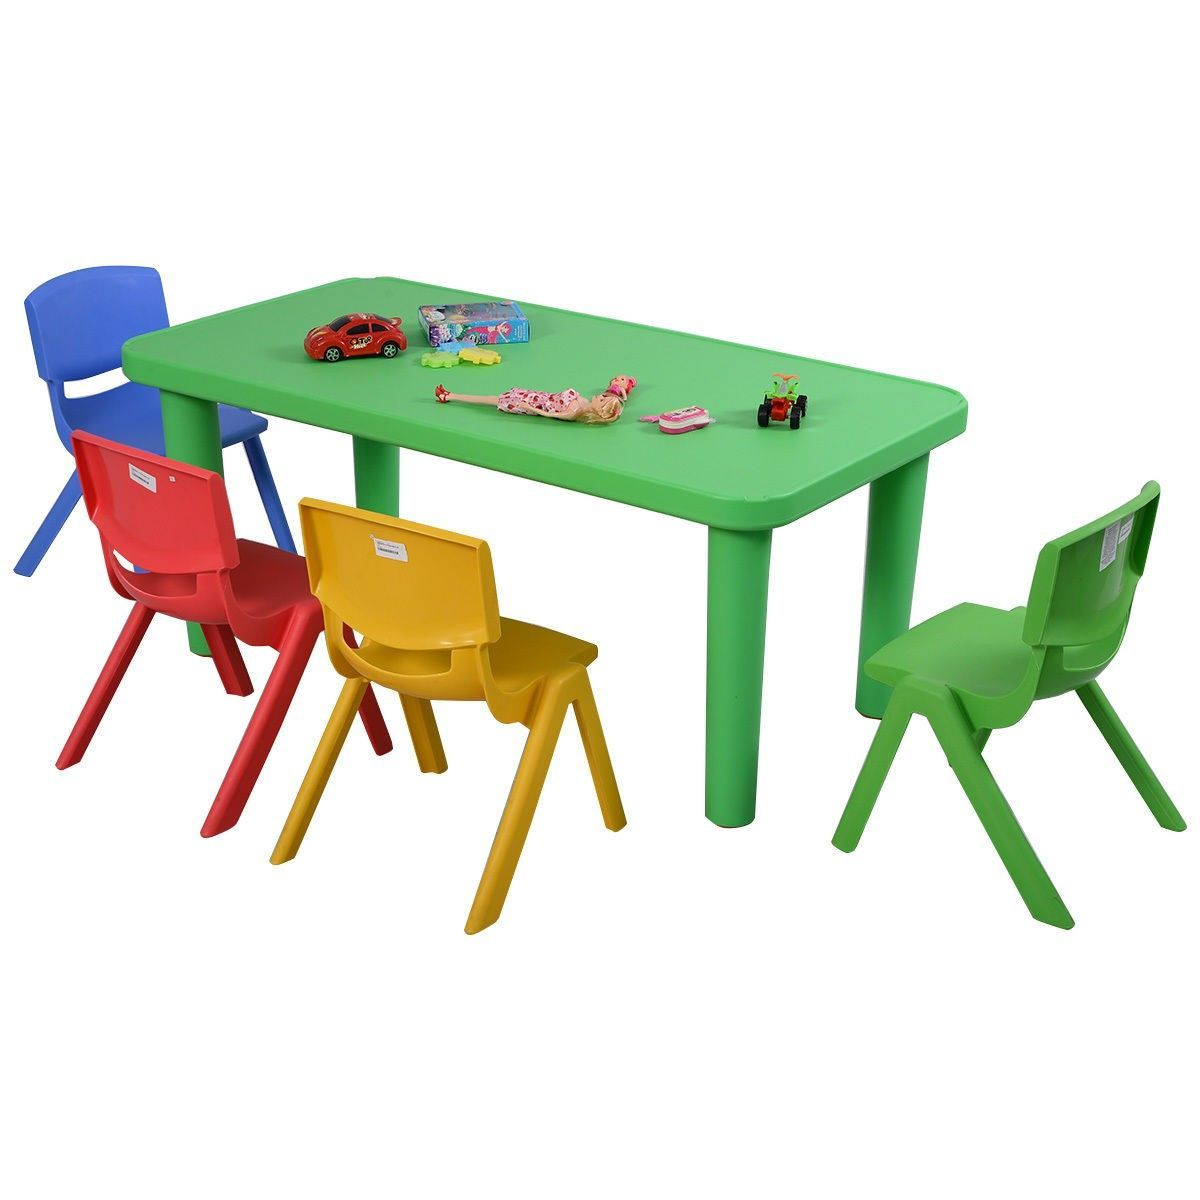 Set Plastic Kids Table And Chairs